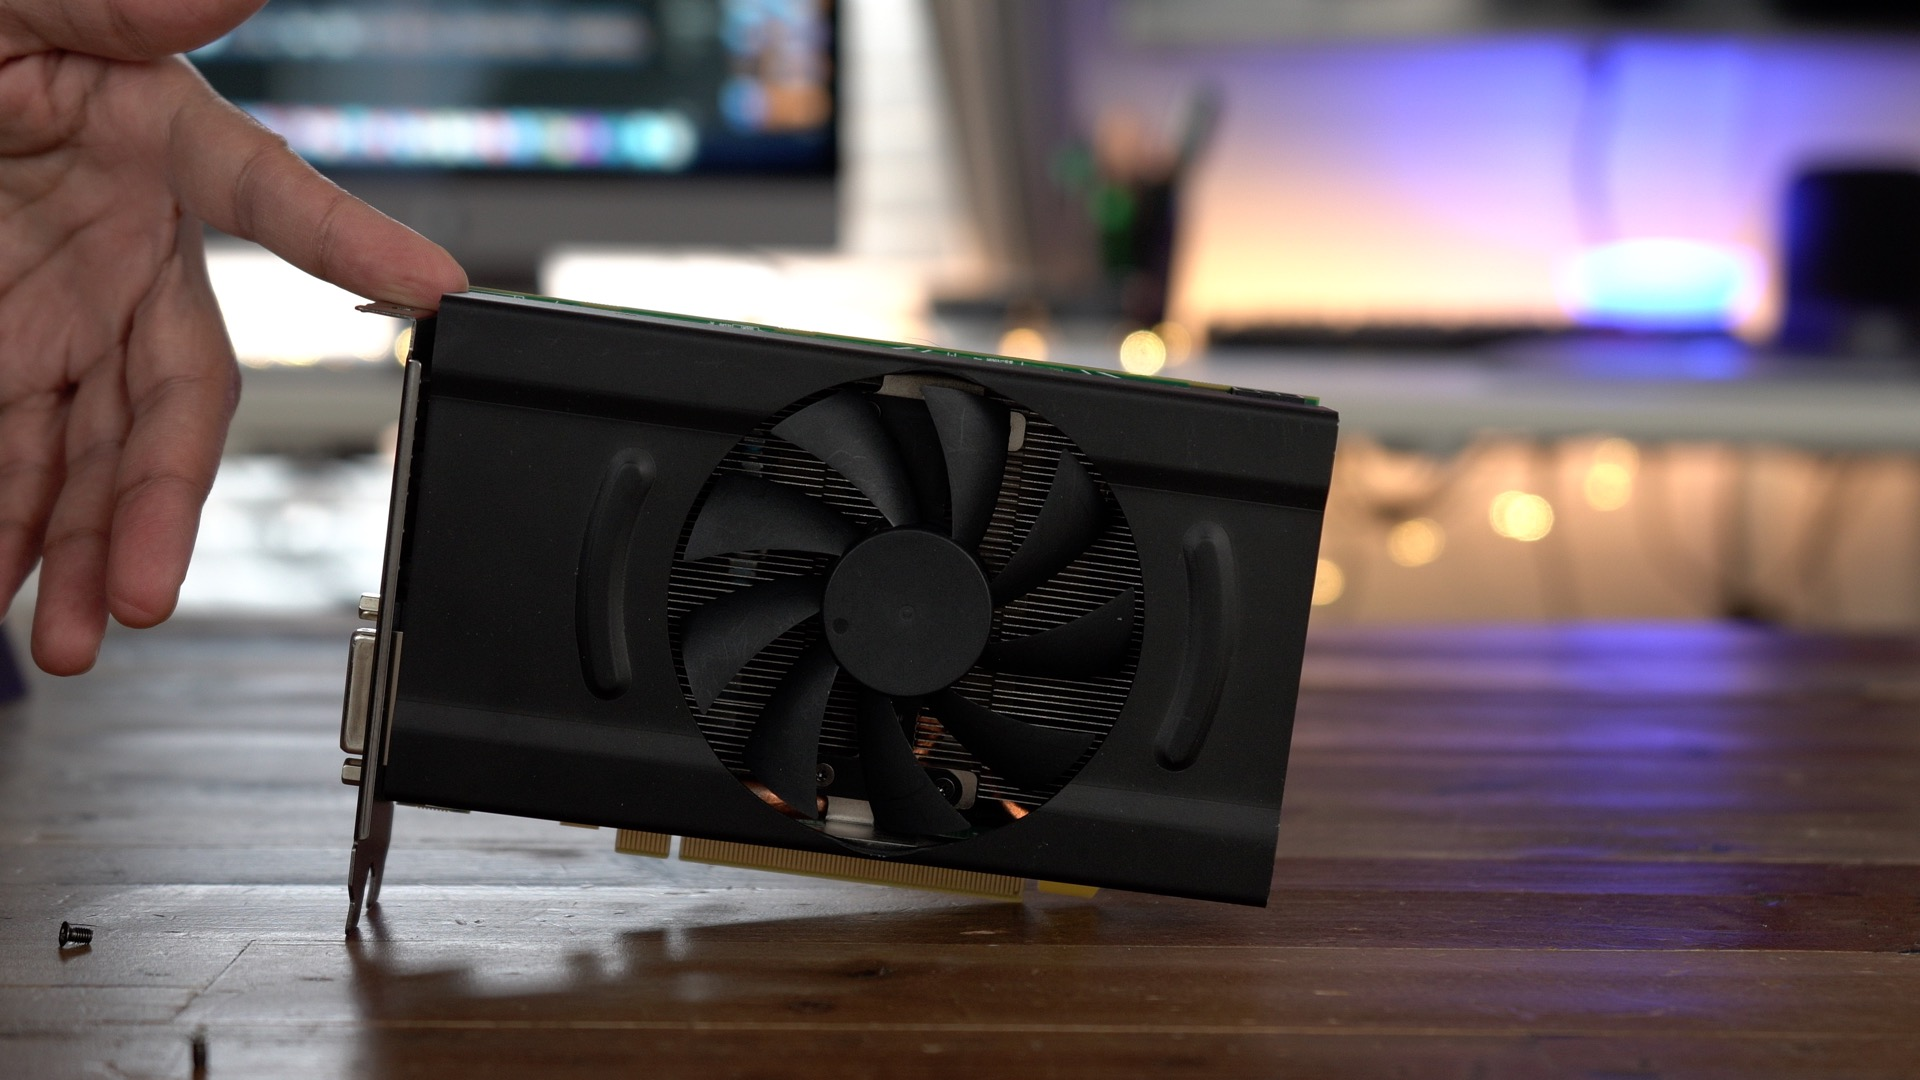 PowerColor Mini Pro eGPU RX 570 GPU out